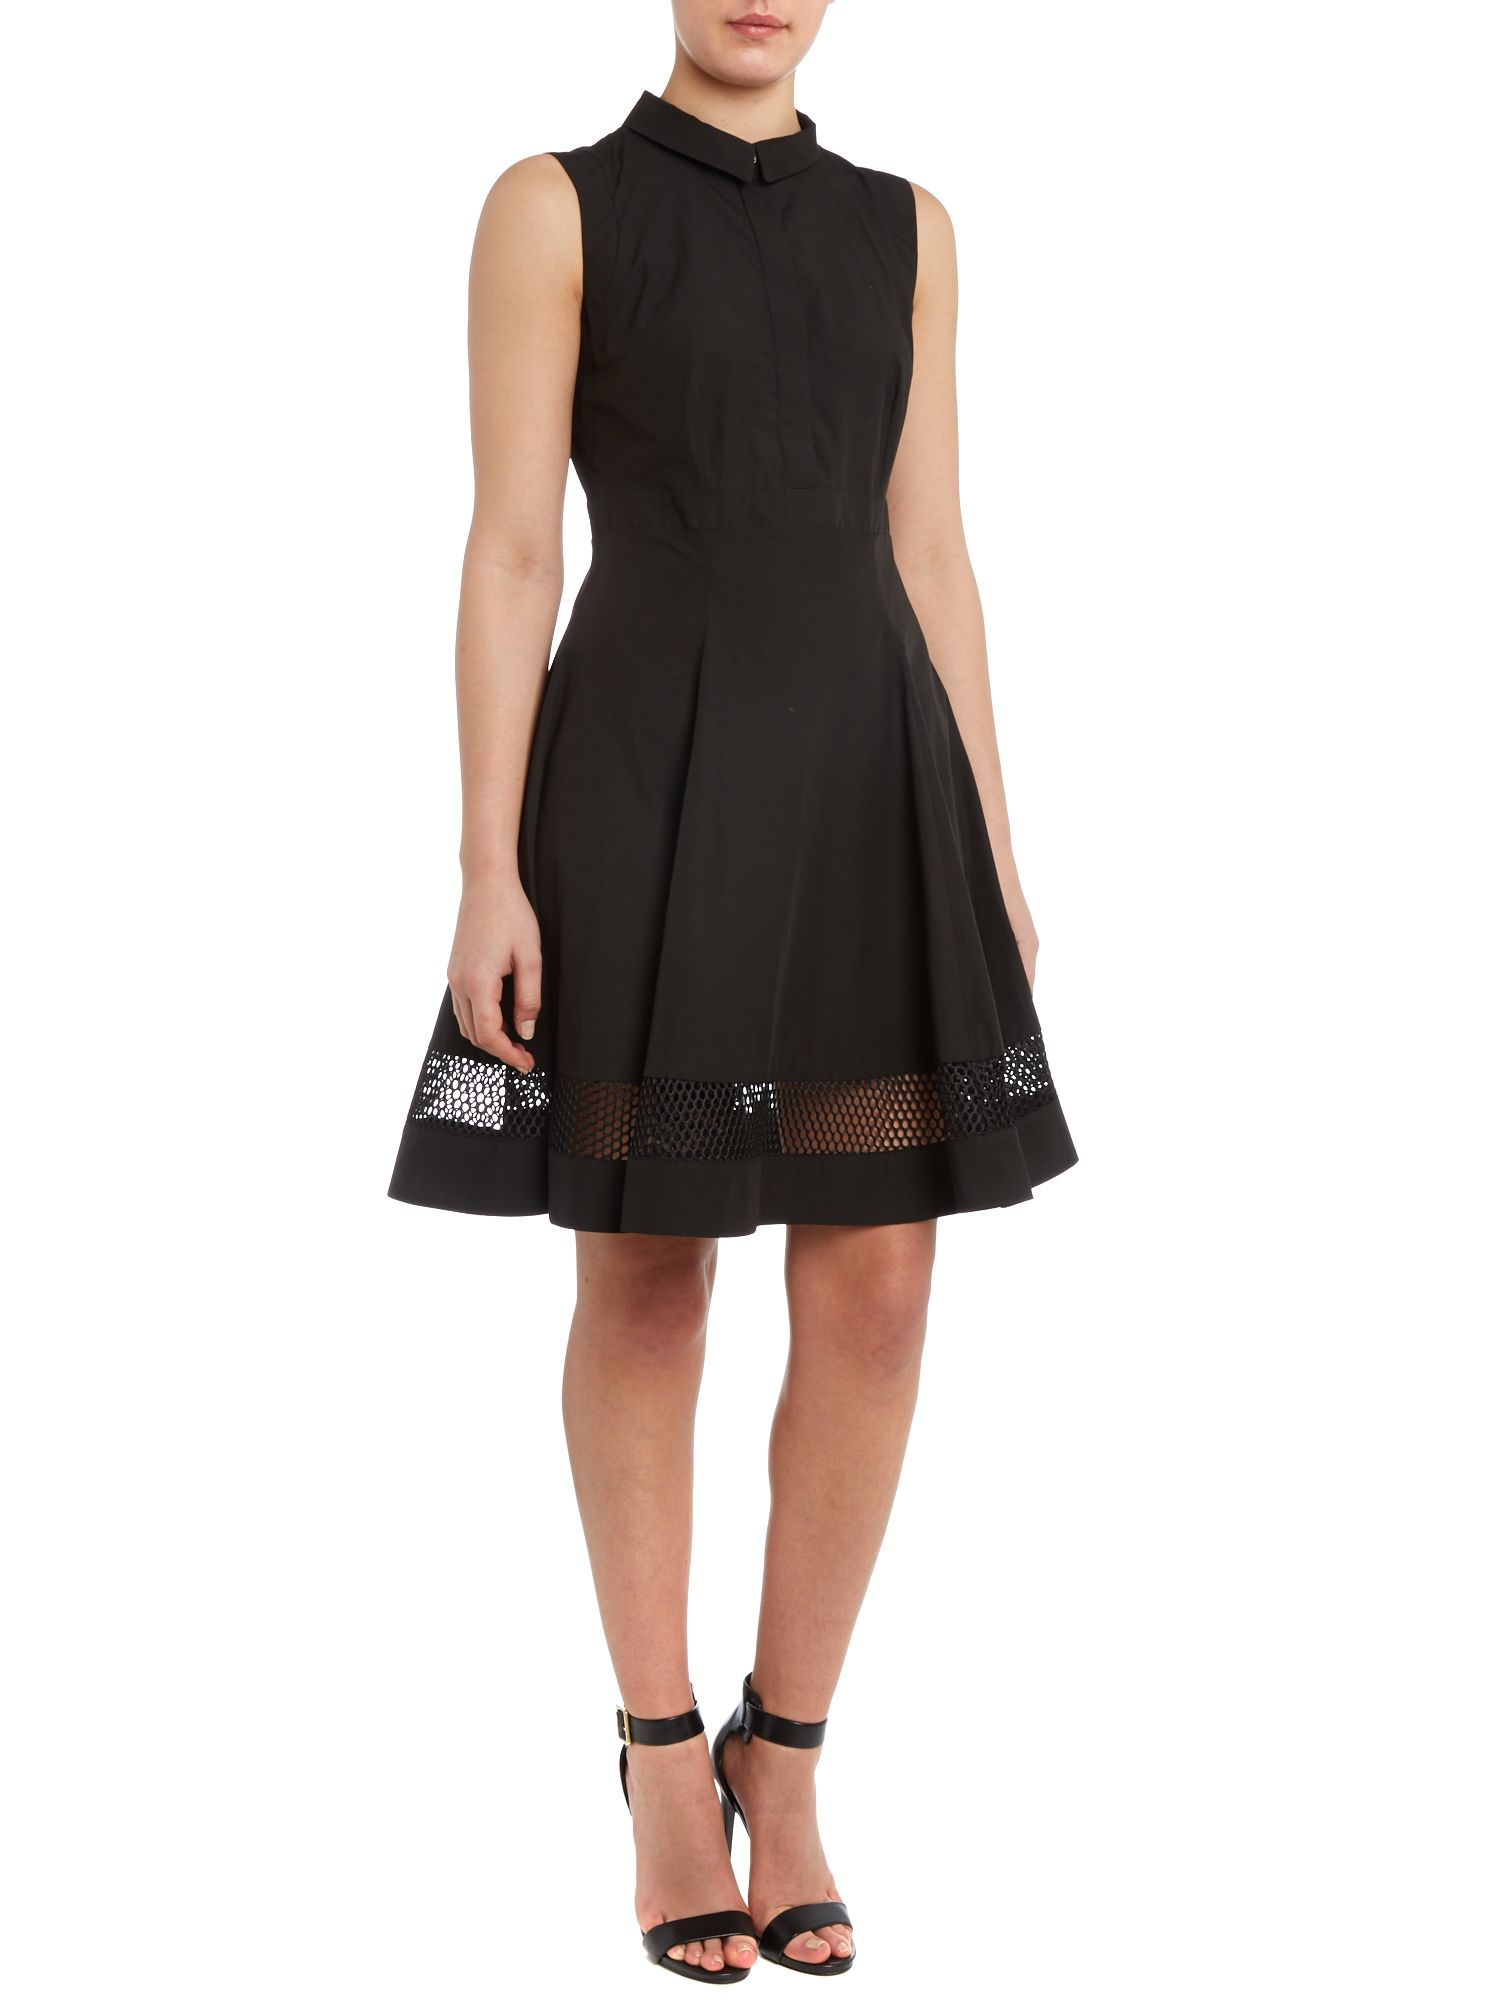 Sleeveless dress with hem detail